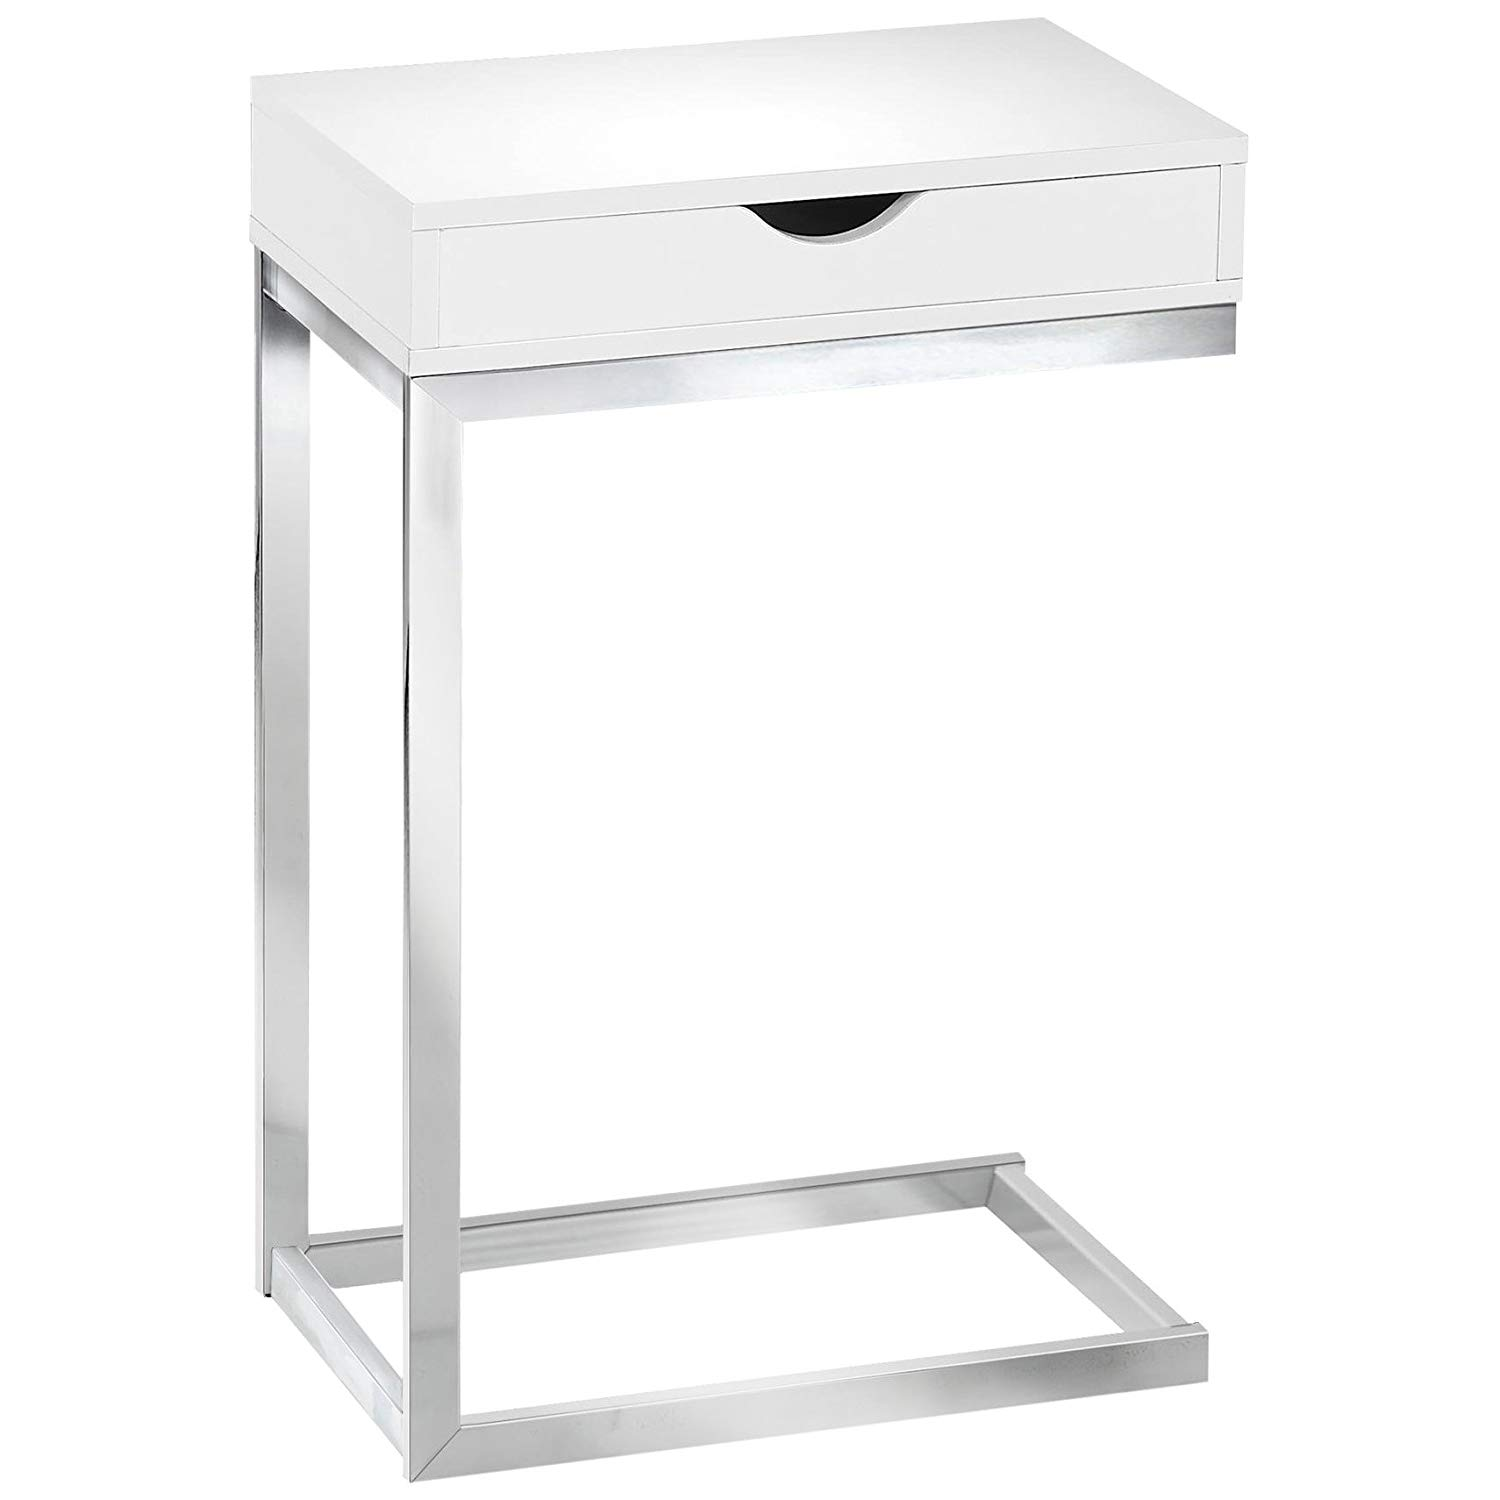 monarch specialties accent table with drawer mirrored chrome metal glossy white kitchen dining wood end legs trestle electric mixer pottery barn side clear modern room chairs